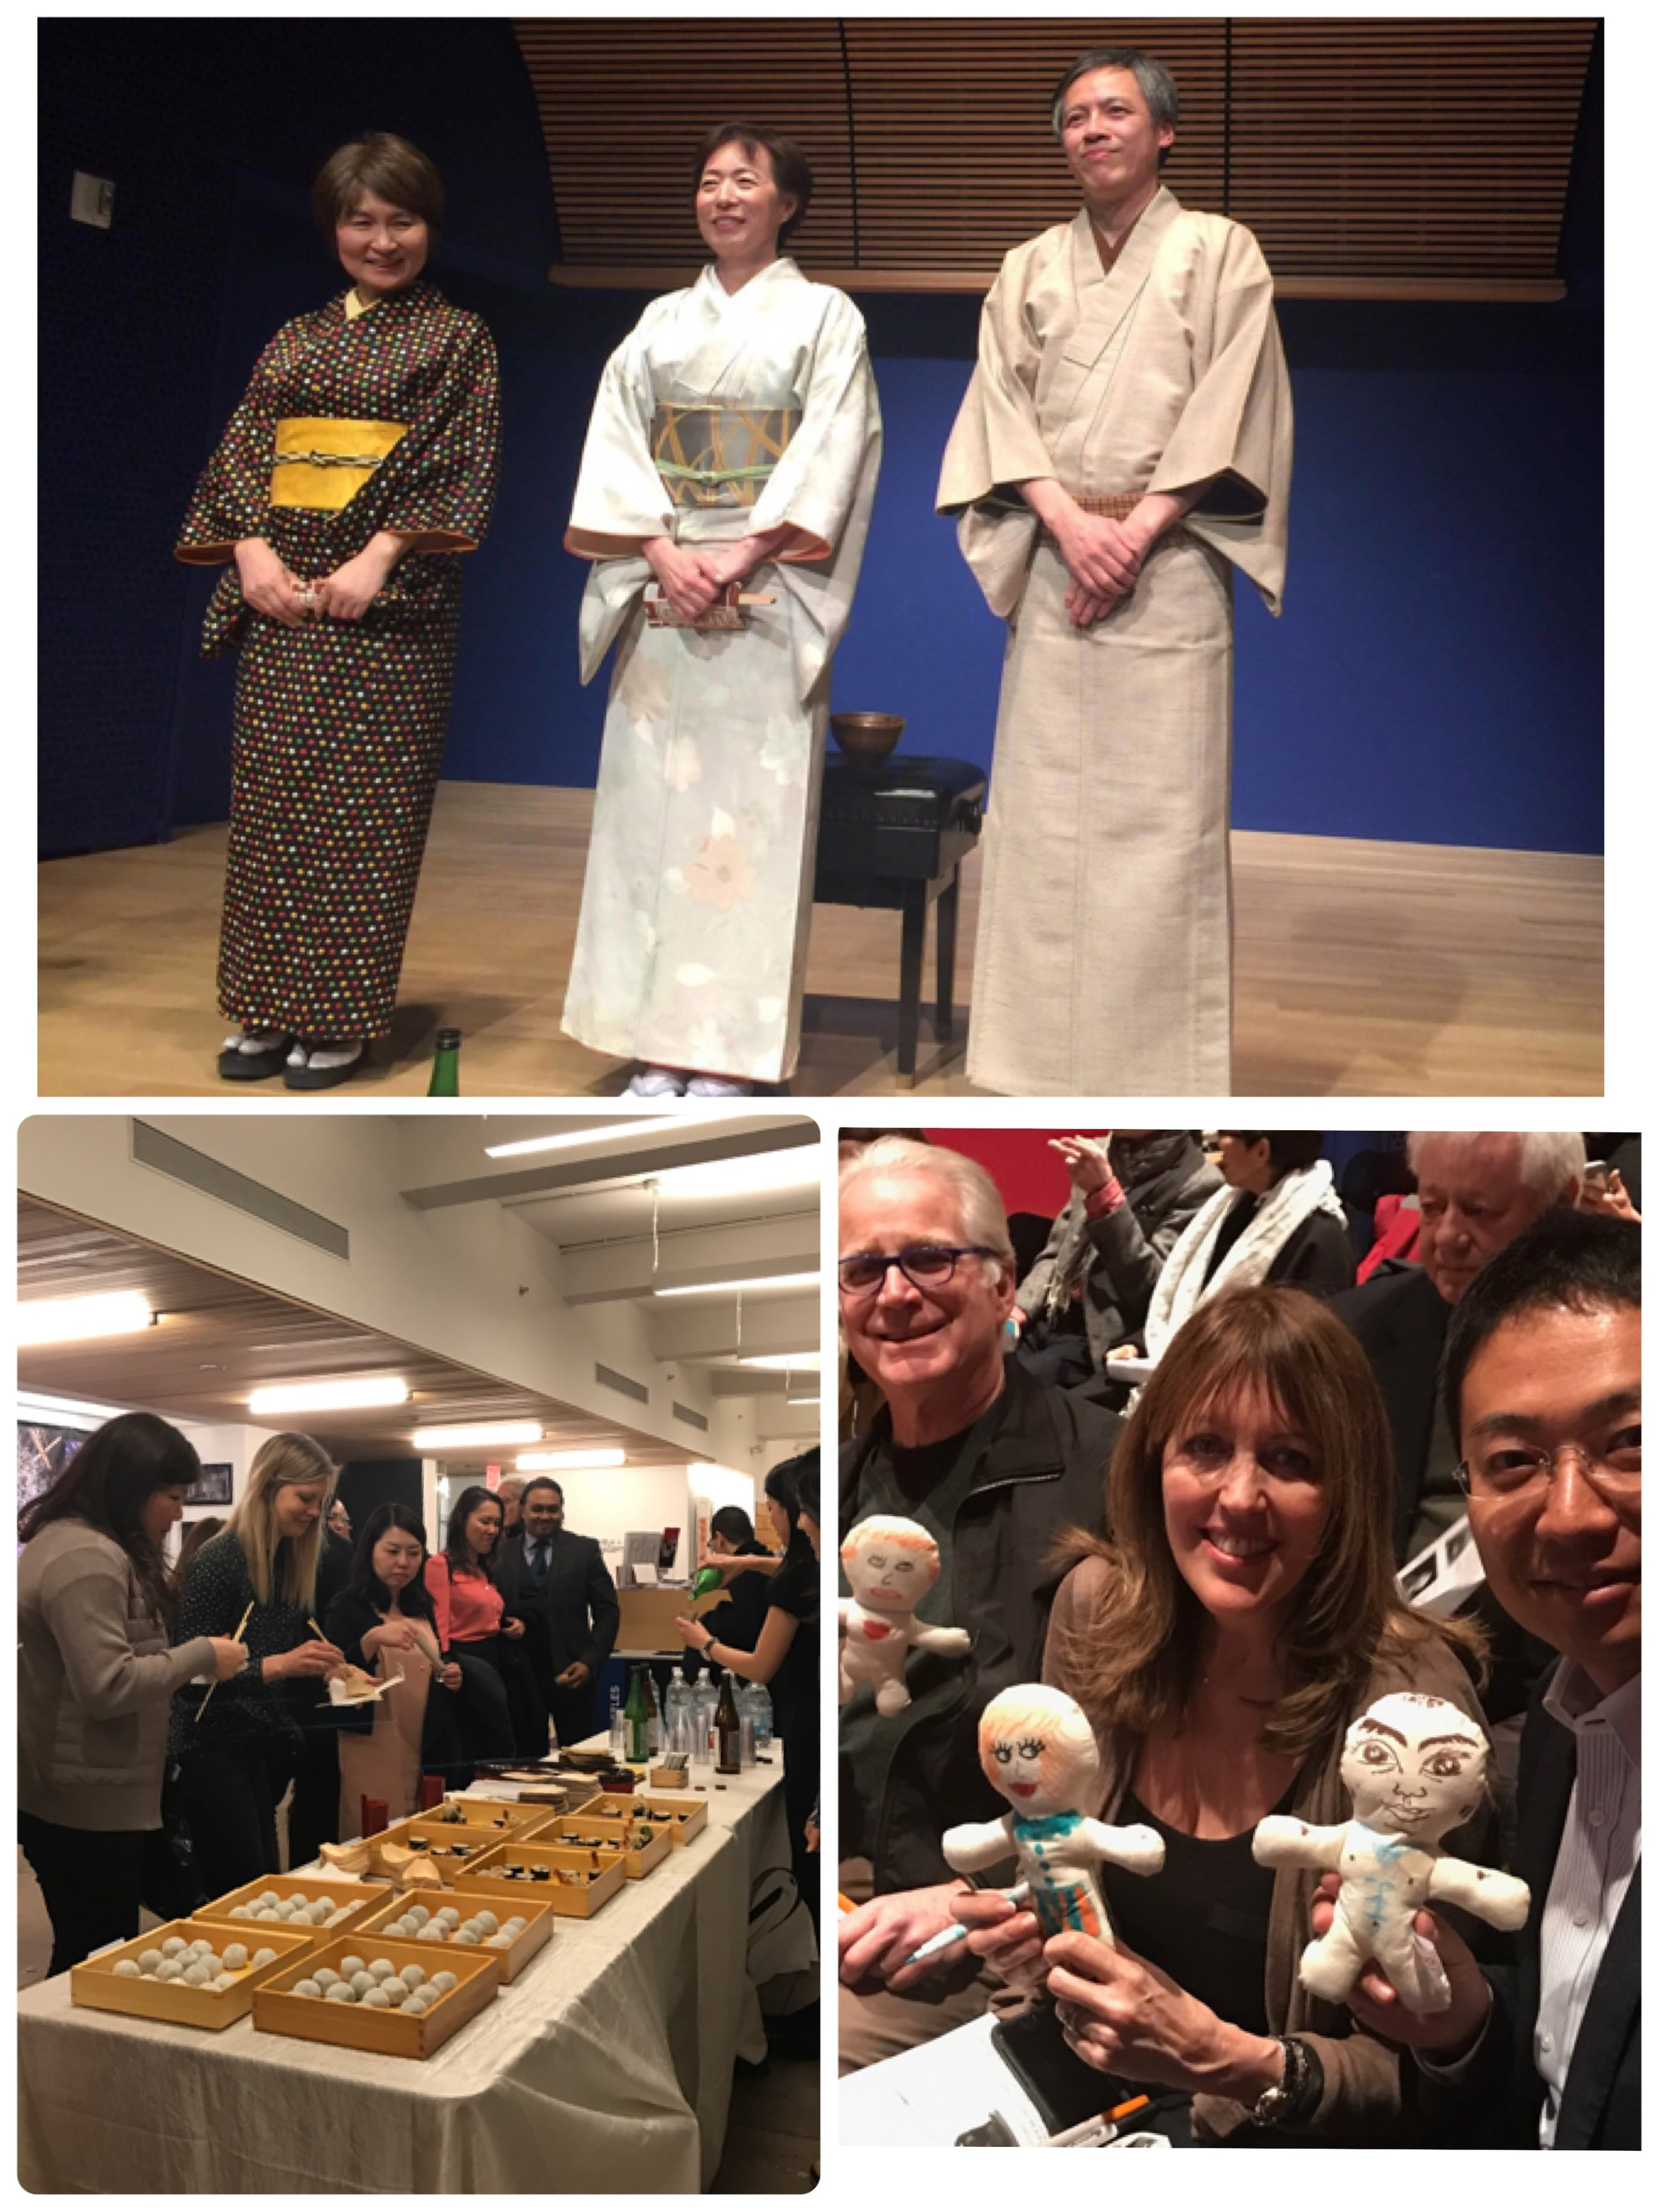 What a fun evening it was!    With your generosity, we raised  $2,500+ !!  Hope everyone enjoyed the Rakugo performance as well as  Soba-sushi ,  Matcha Mochi  and  Manzairaku Sake .  Please visit  our photo gallery   or  FB MSTERIO page  to see more pictures.  In May and June there are a few exciting events coming up. We cannot wait to see you!   For further information, visit our FB page as well as our  Blog page .  Any and all ideas where to send MSTERIO dolls to, we'd love to hear from you!